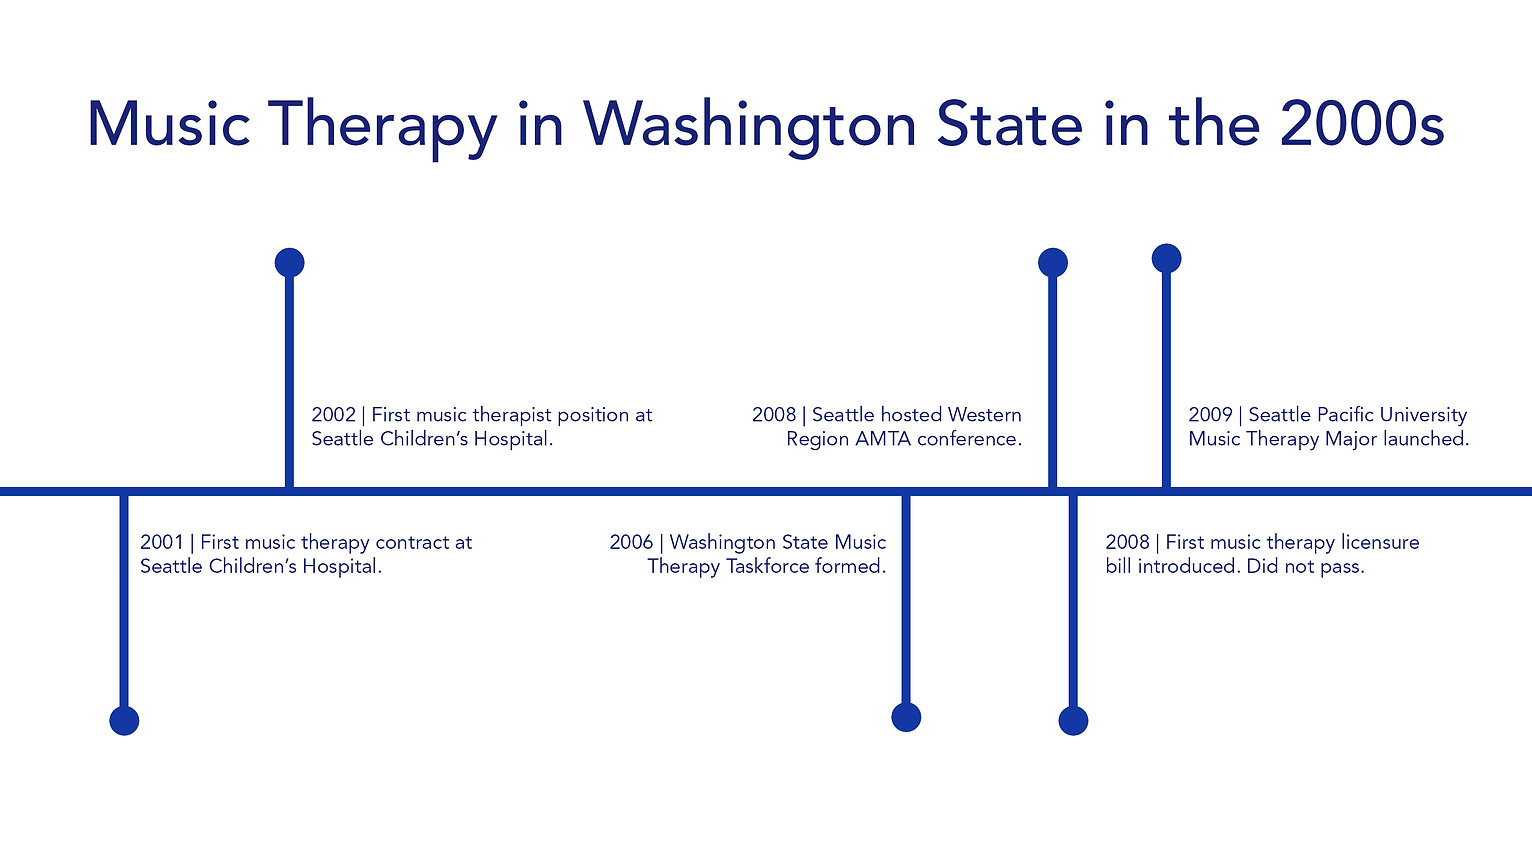 "A timeline of ""Music Therapy in Washington State in the 2000s."" It's all deep blue lettering and shapes against a white background. These are the events listed: (1) 2001 